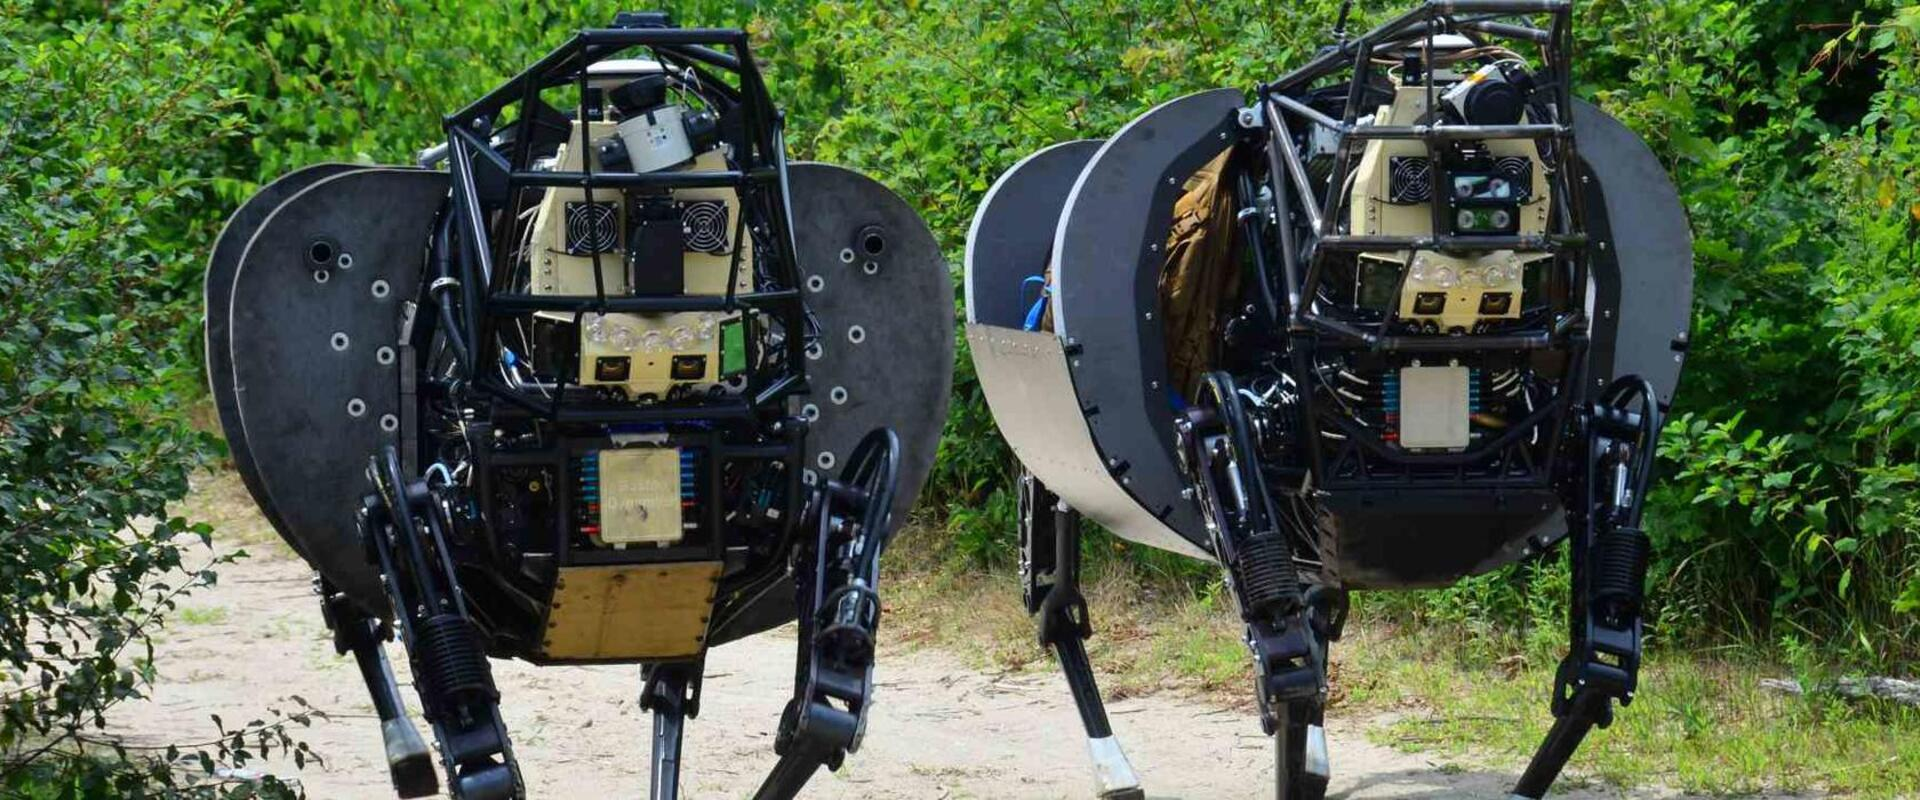 LS3 Robots - Legged Squad Support Systems